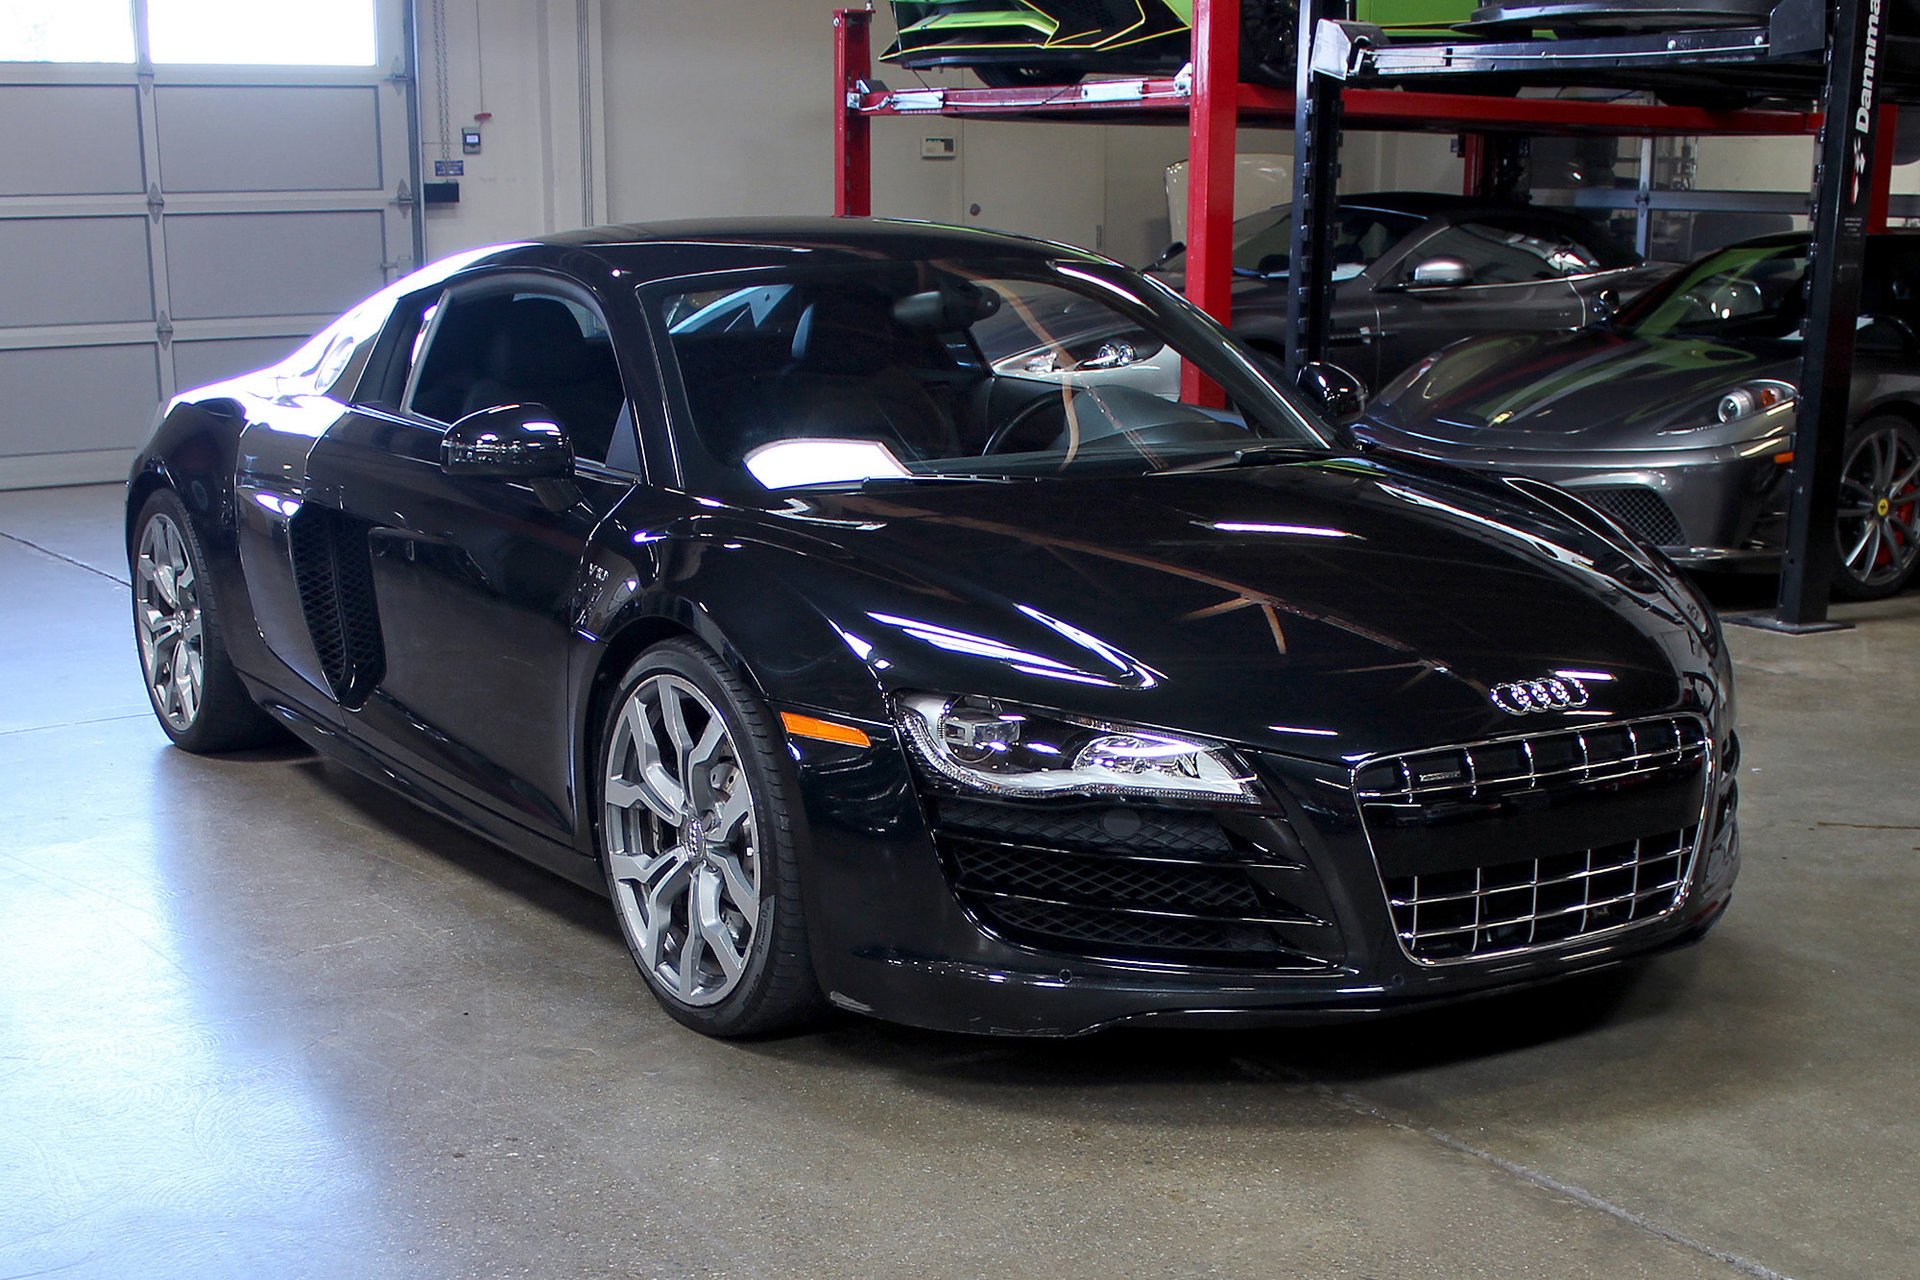 2010 audi r8 v10 san francisco sports cars. Black Bedroom Furniture Sets. Home Design Ideas